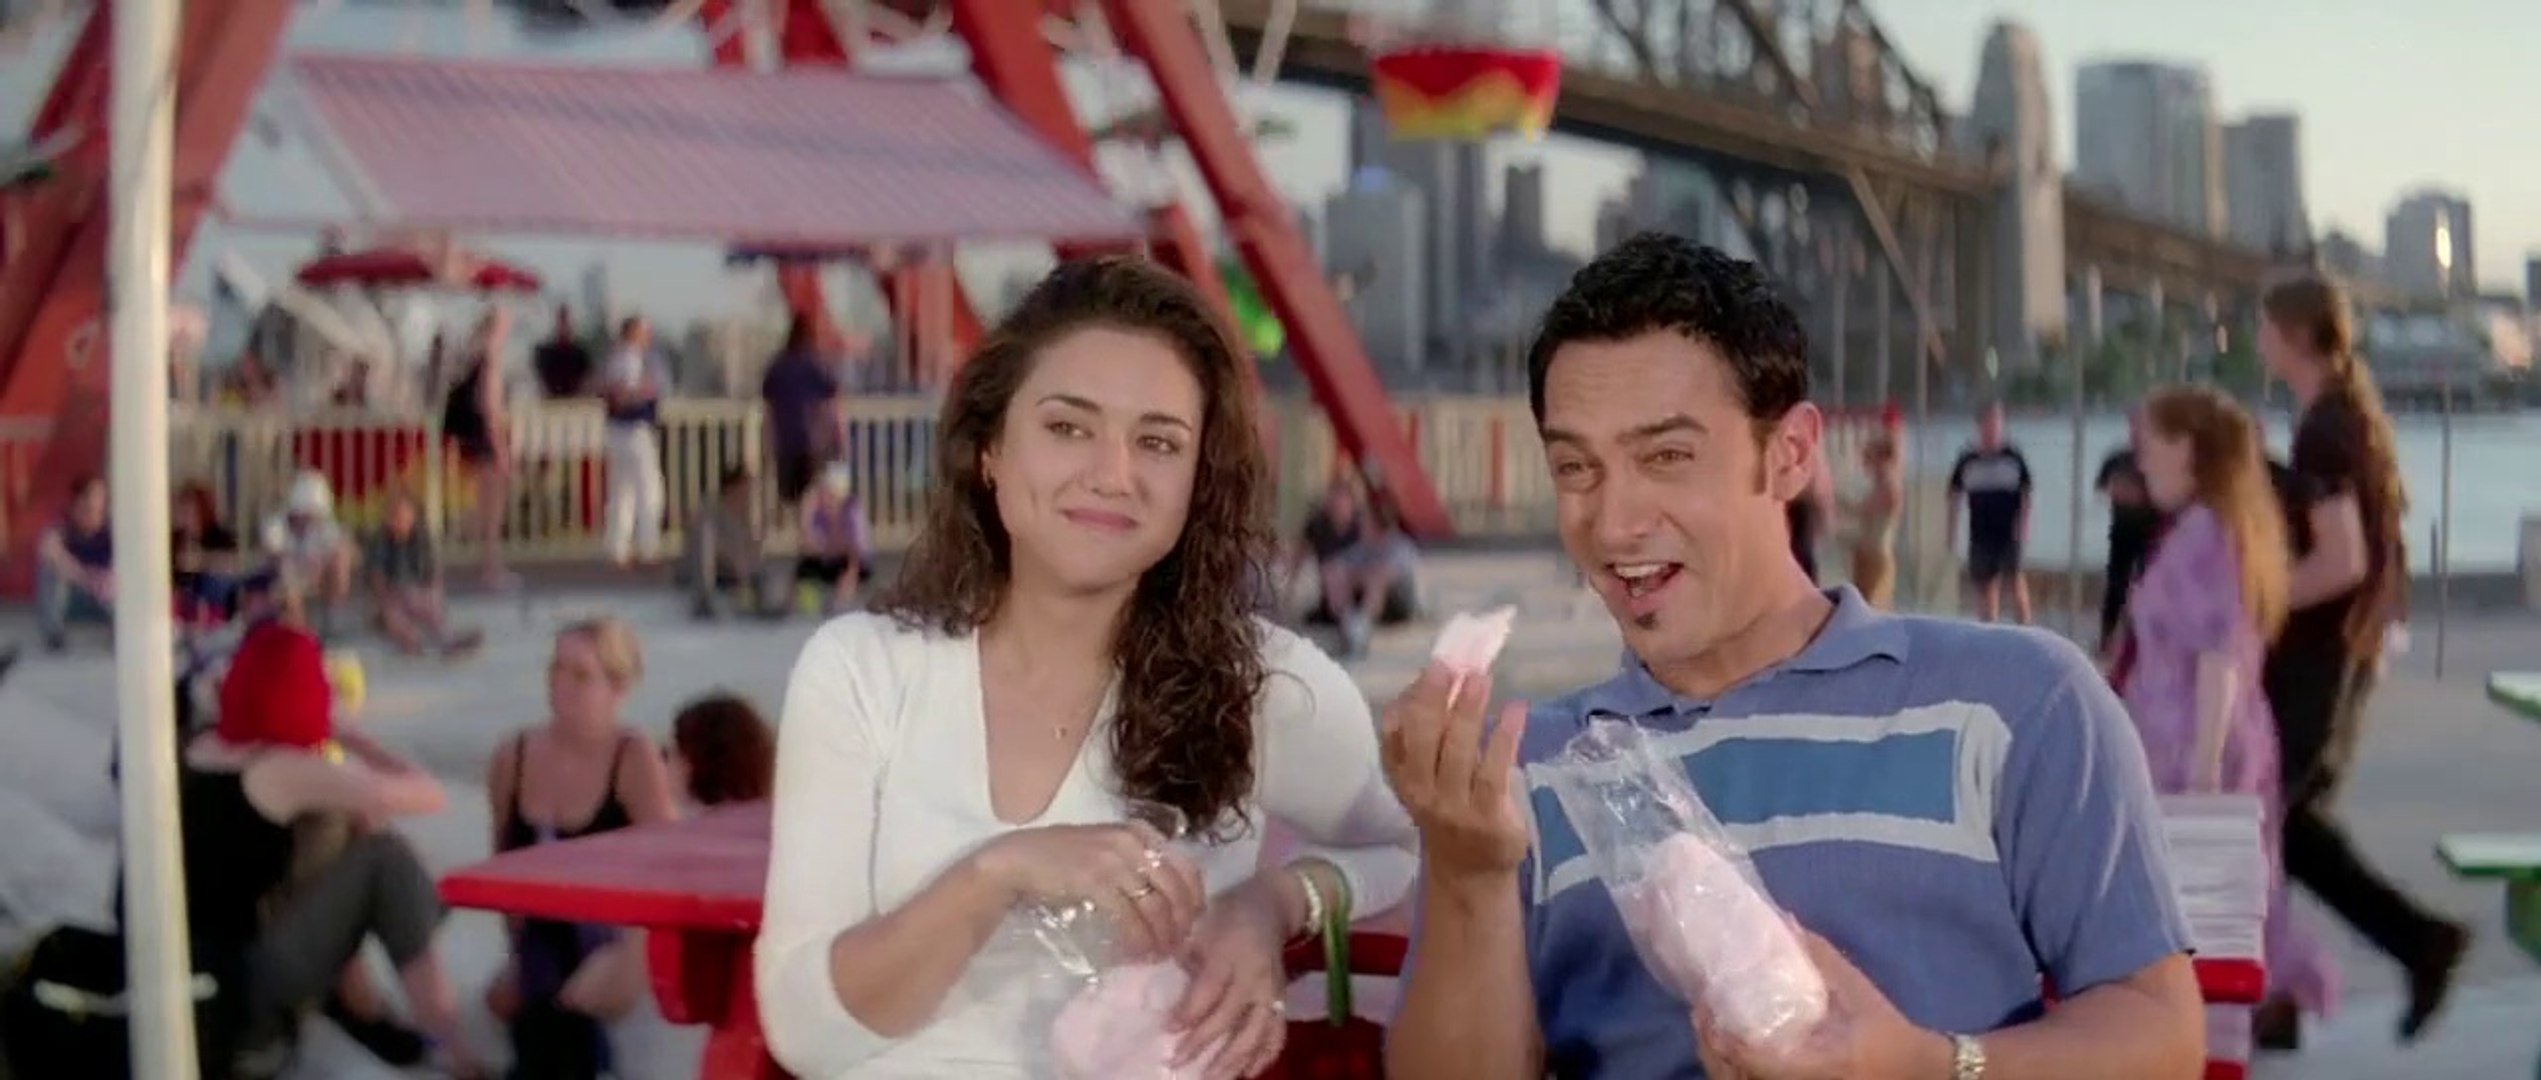 dil chahta hai movie free download hd torrent